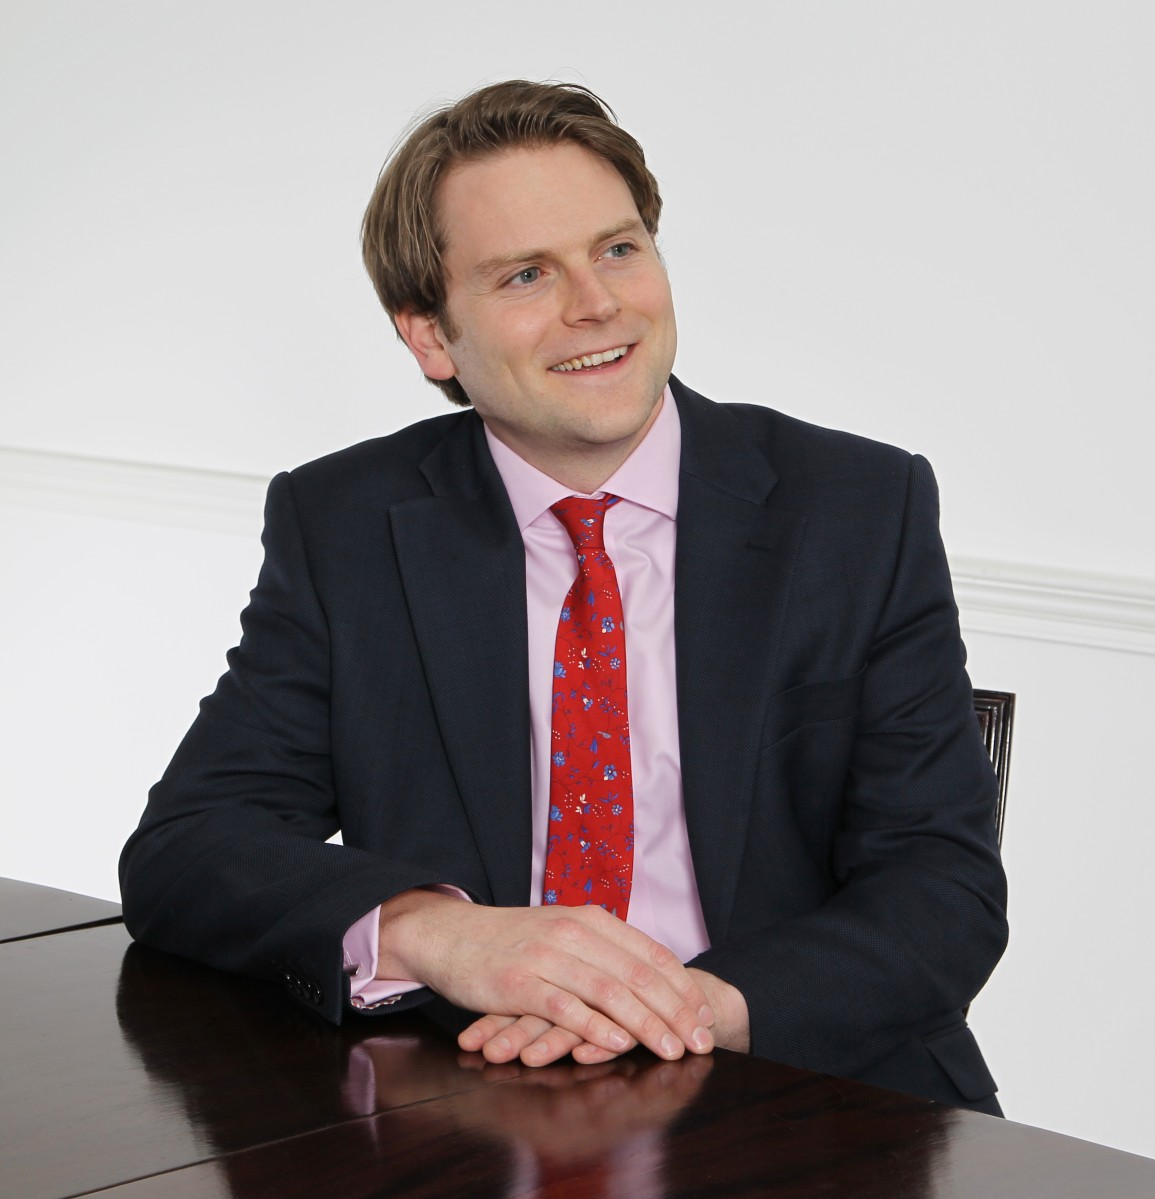 James Brockhurst is senior associate, private client at Forsters LLP